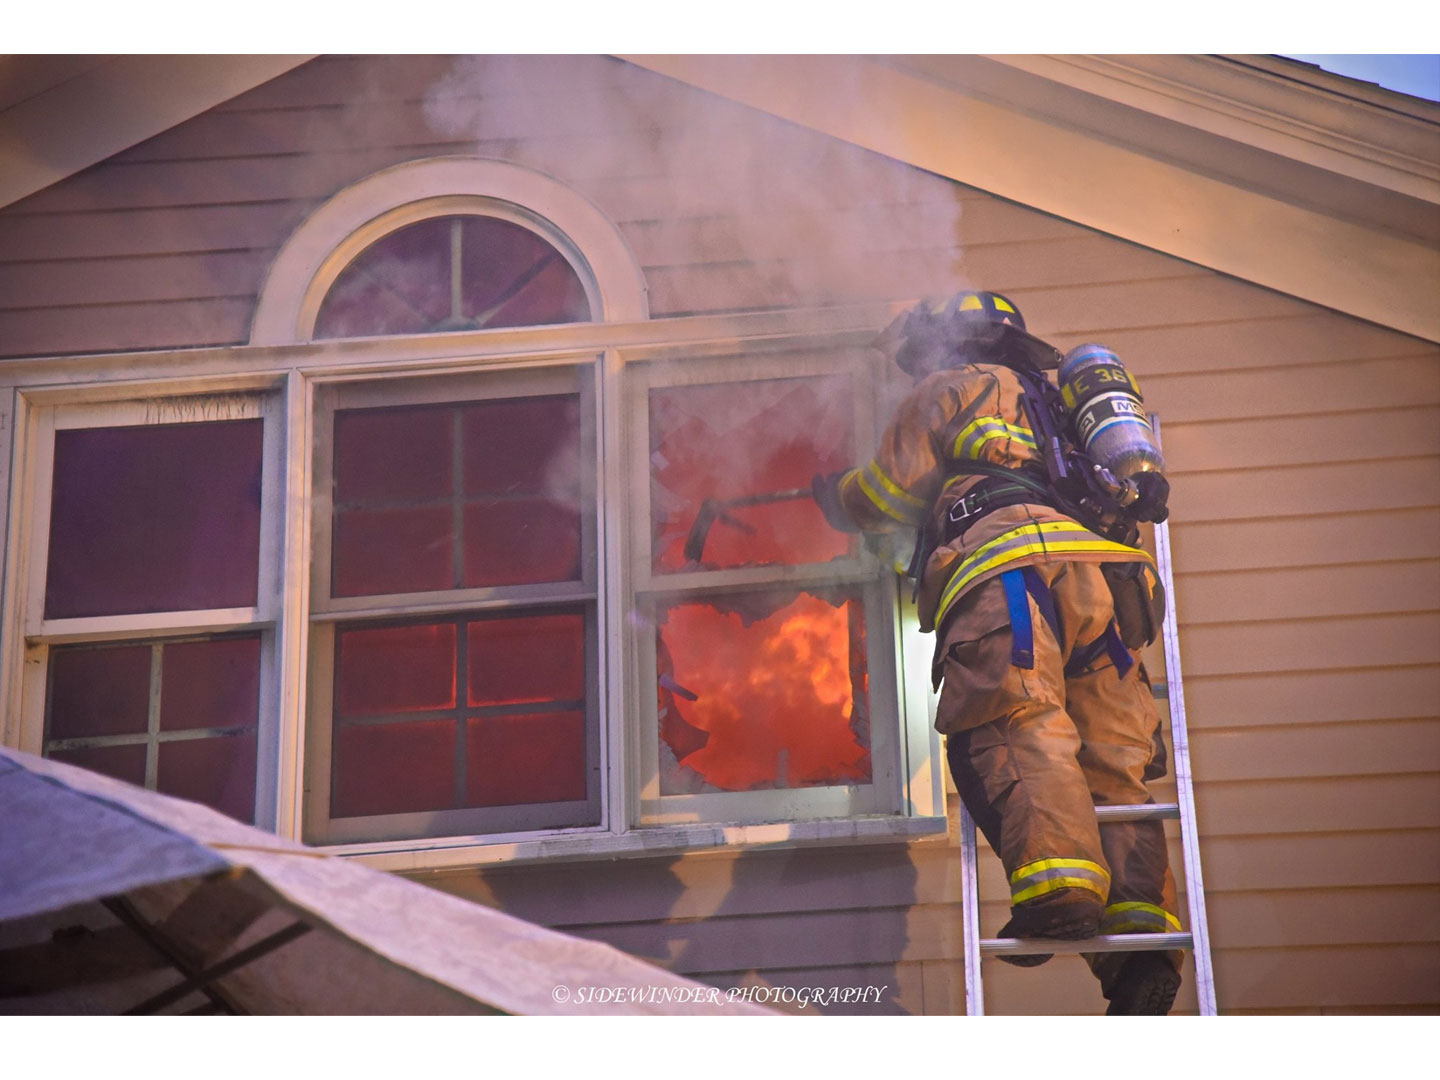 Fire rages inside the home as a firefighter operates on a ladder.